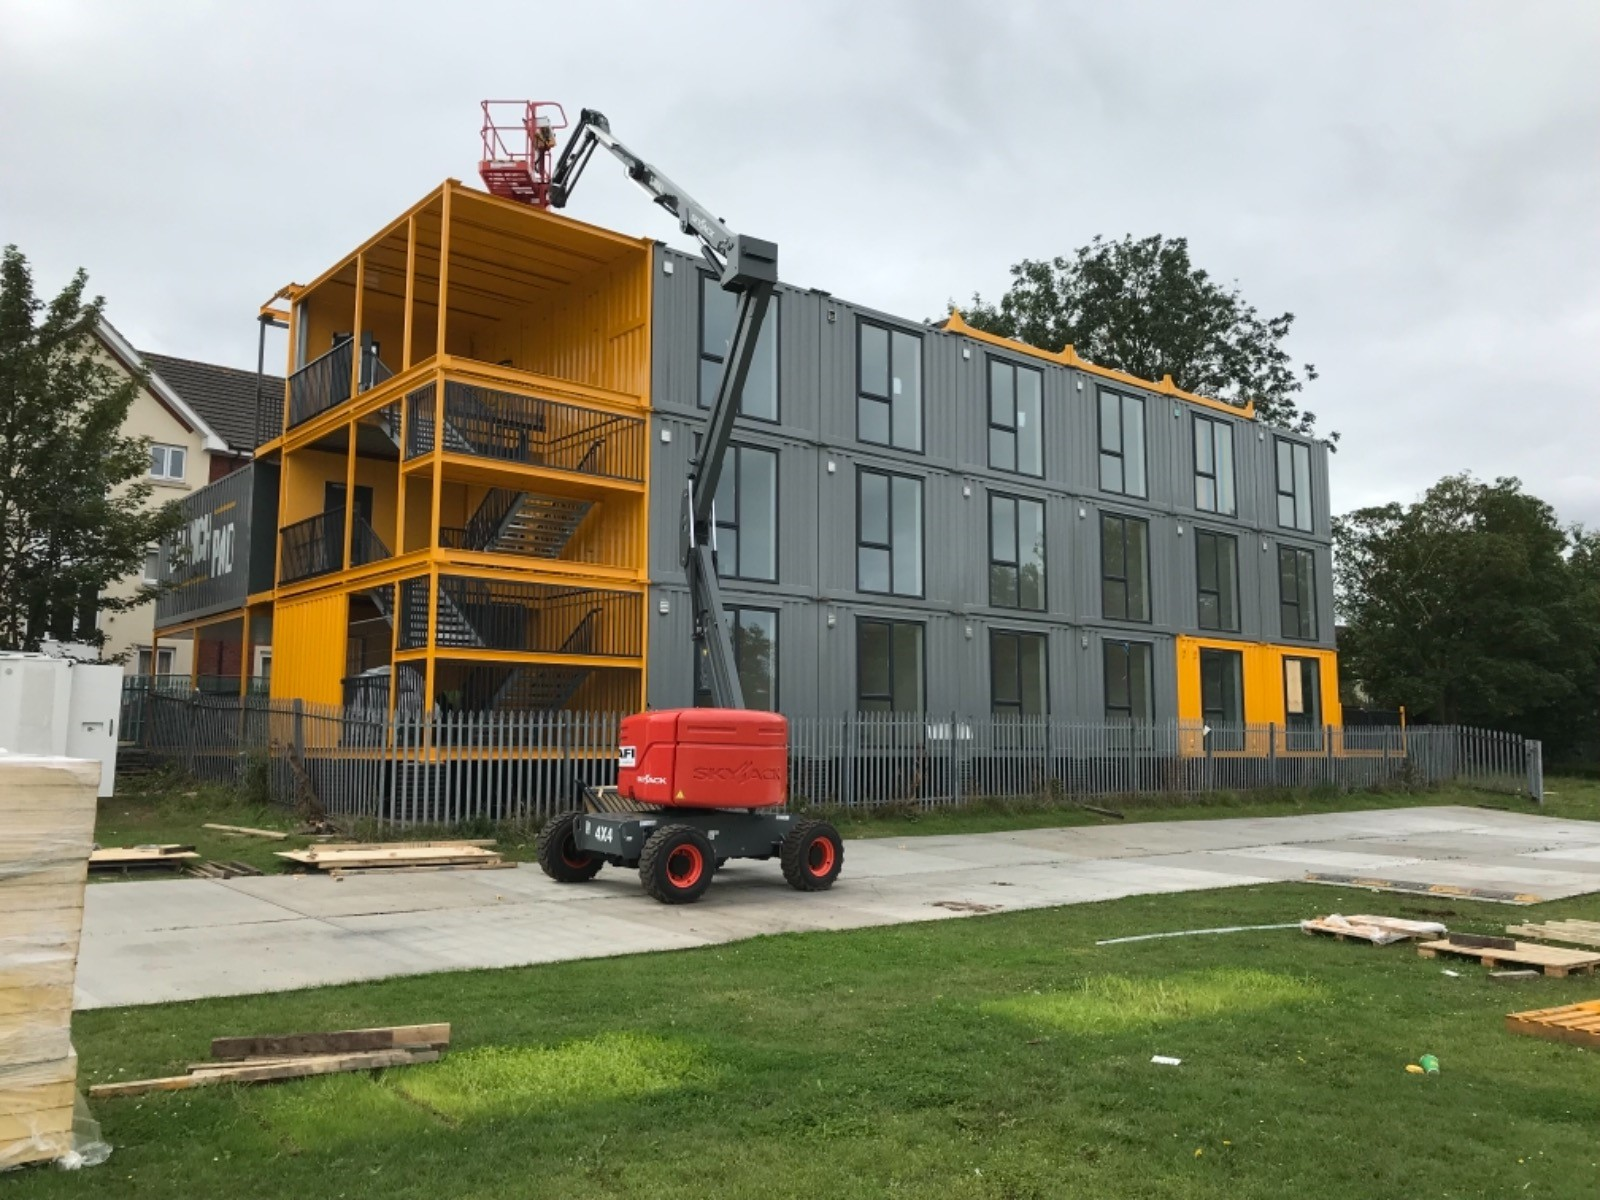 The apartment units built by Integra in East Yorkshire have been assembled in Bristol to form the Launchpad modular housing community designed to help address a growing housing crisis in the city.